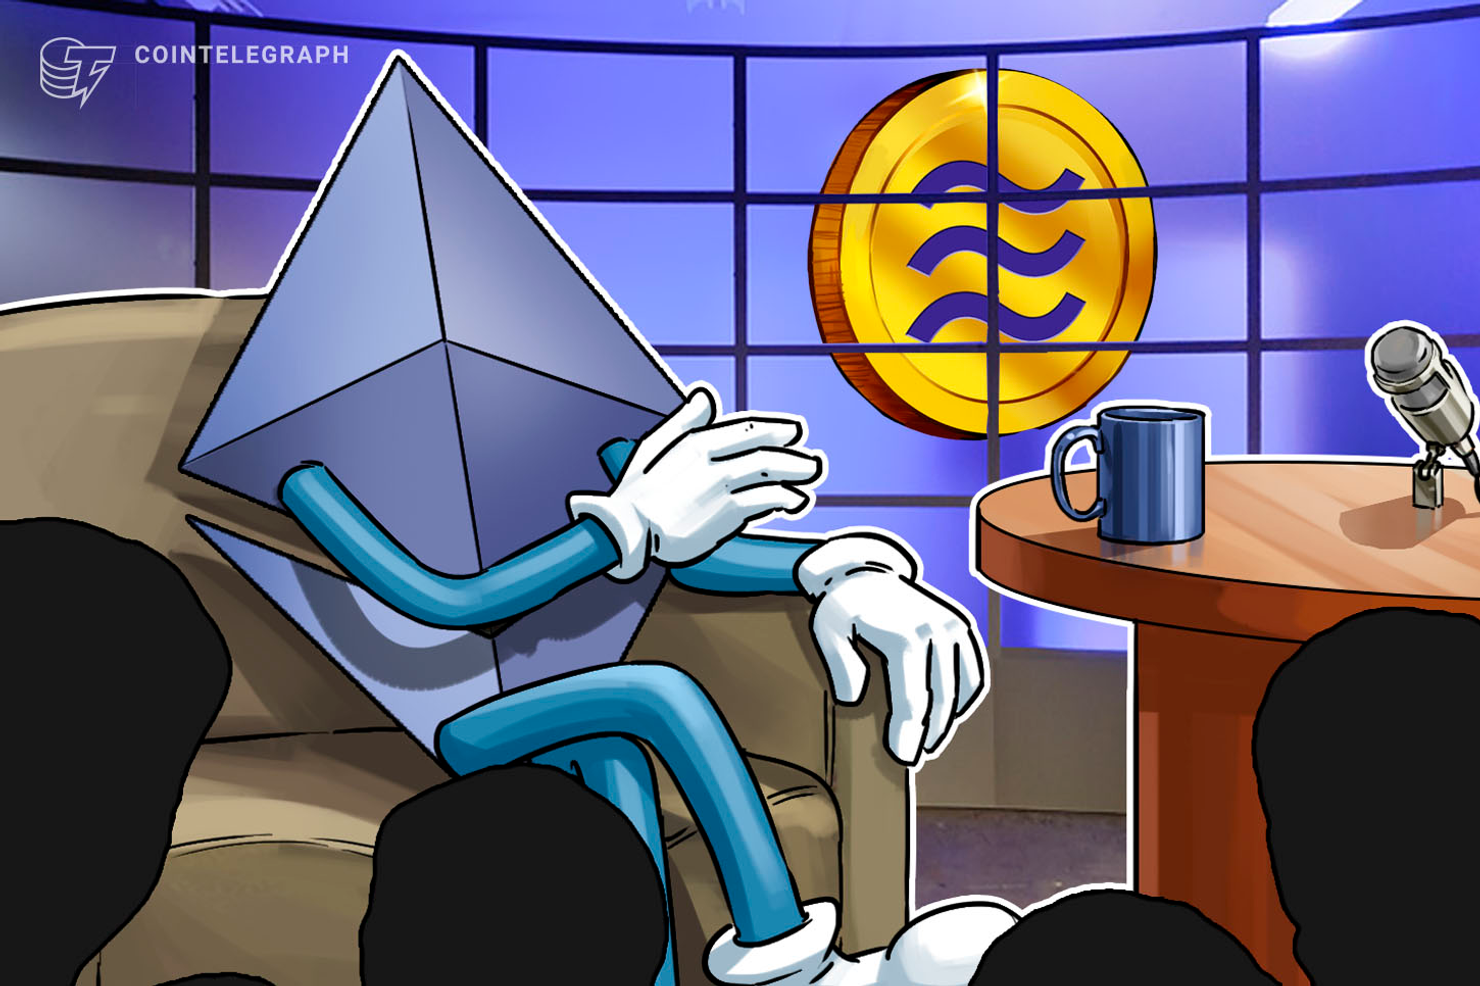 Ethereum Co-Founder Mihai Alisie Concerned Over Libra Centralization